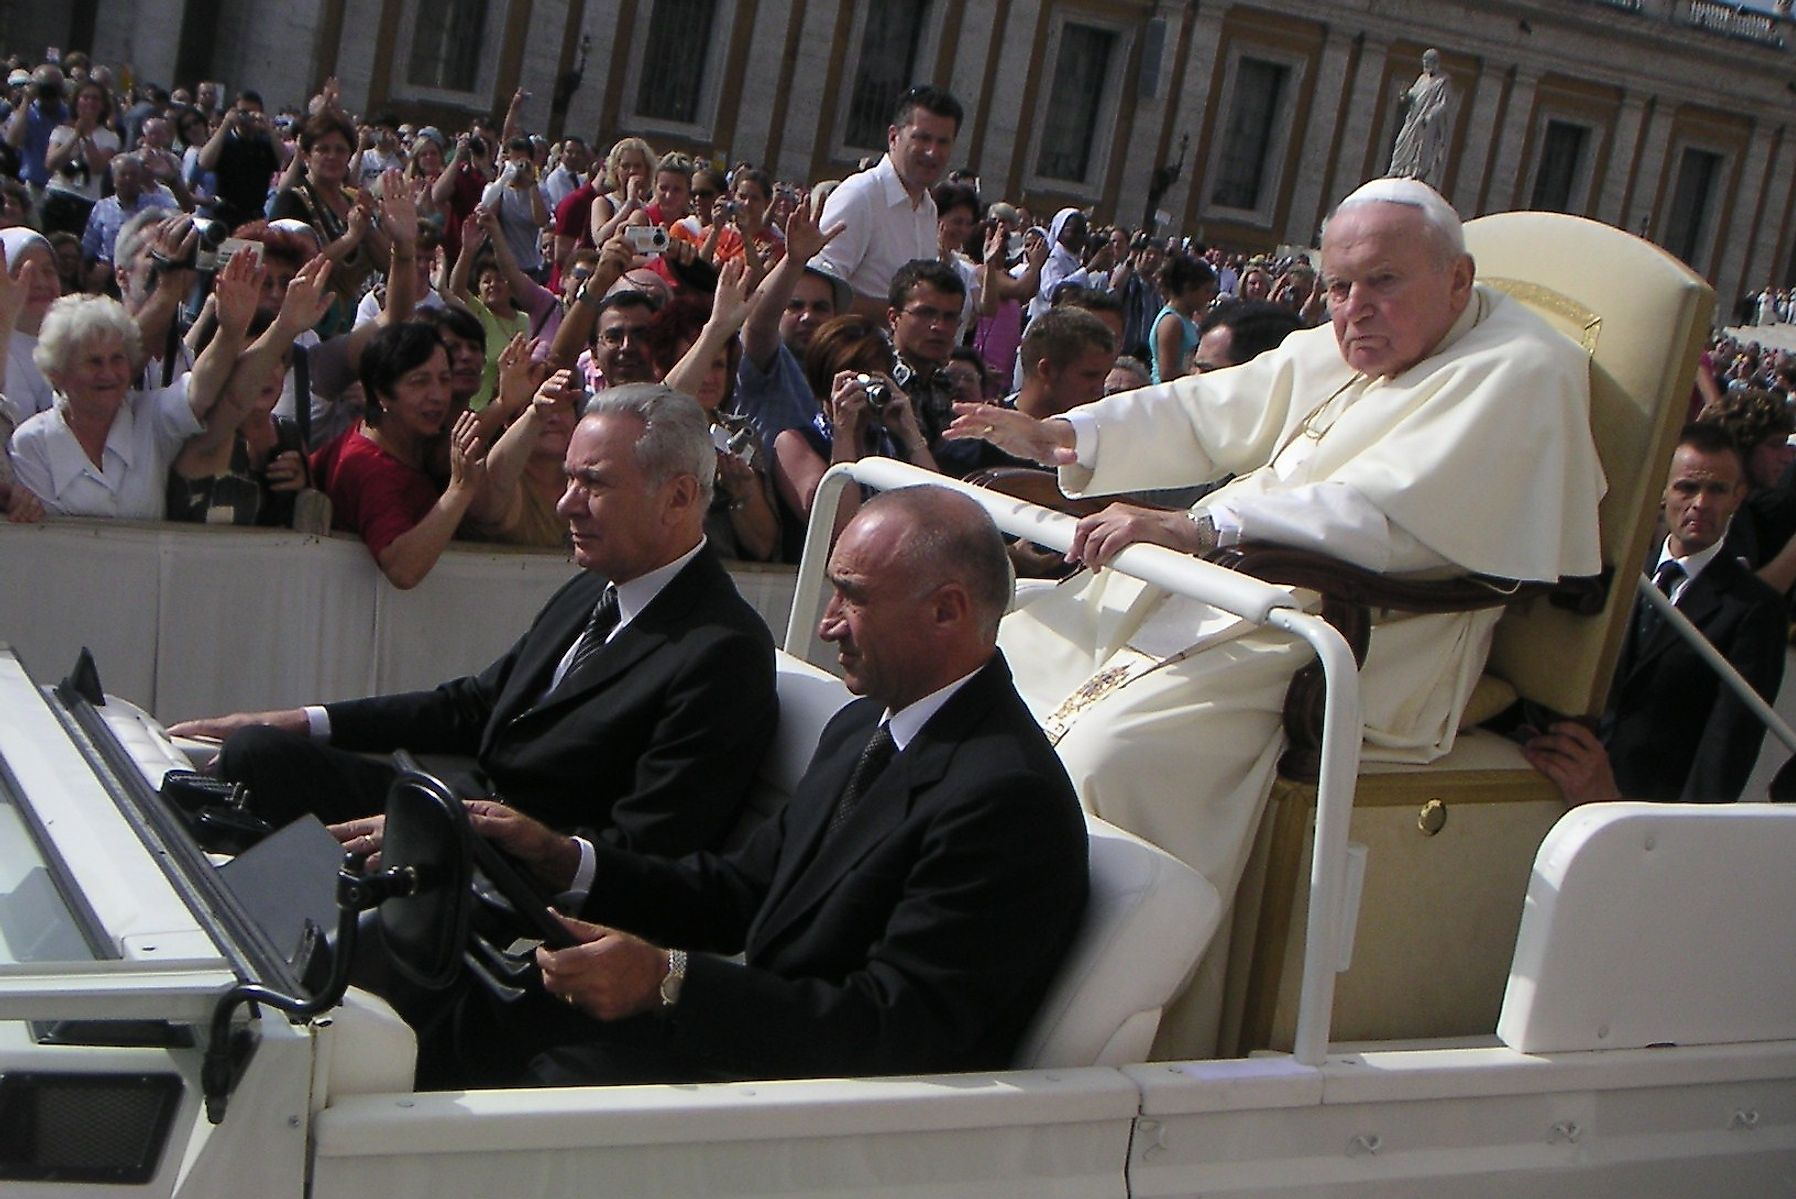 Pope John Paul II, one of longest serving popes (1978-2005), riding the Popemobile in St. Peter's Square in 2004.